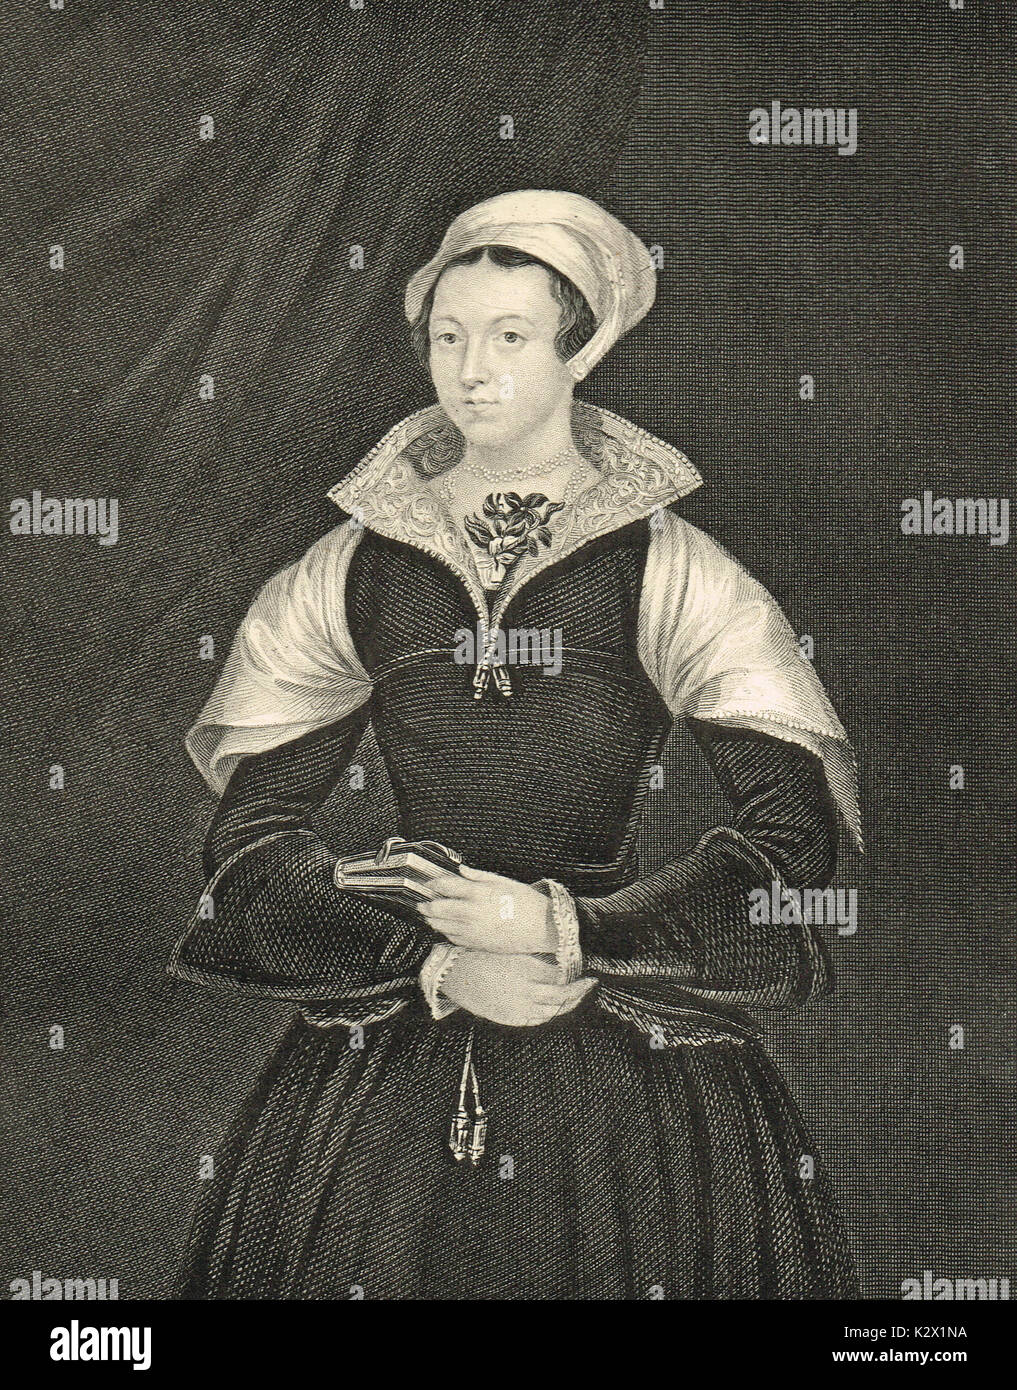 Lady Jane Grey, the Nine Days Queen - Stock Image